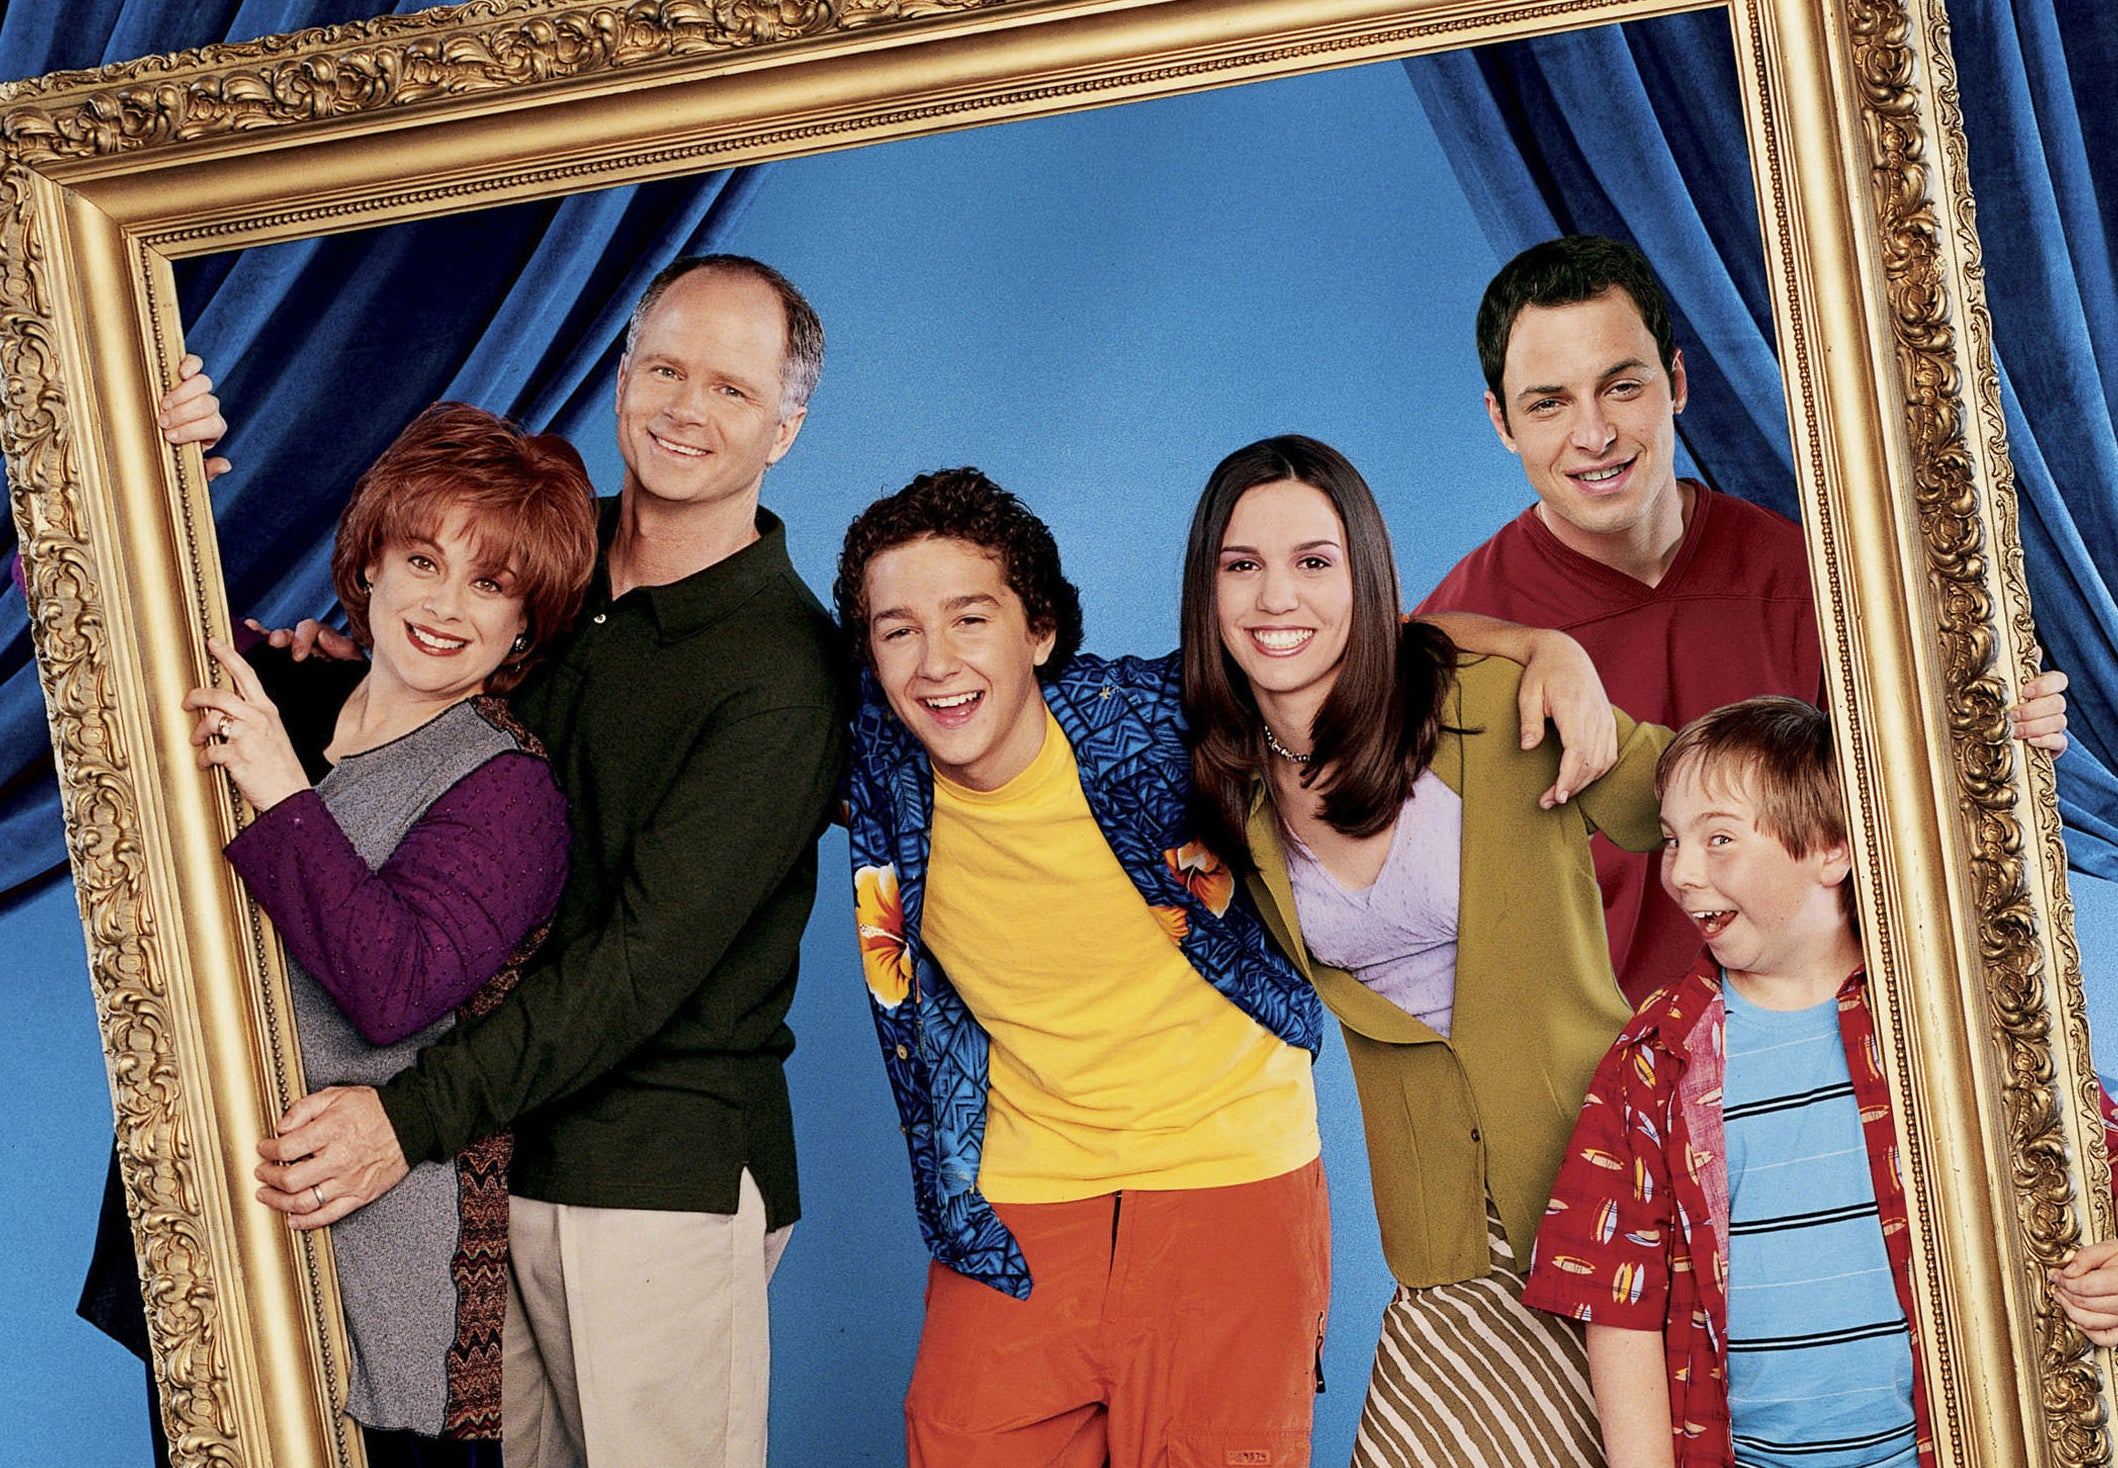 Christy poses with the Even Stevens cast in the middle of a giant frame they are holding up